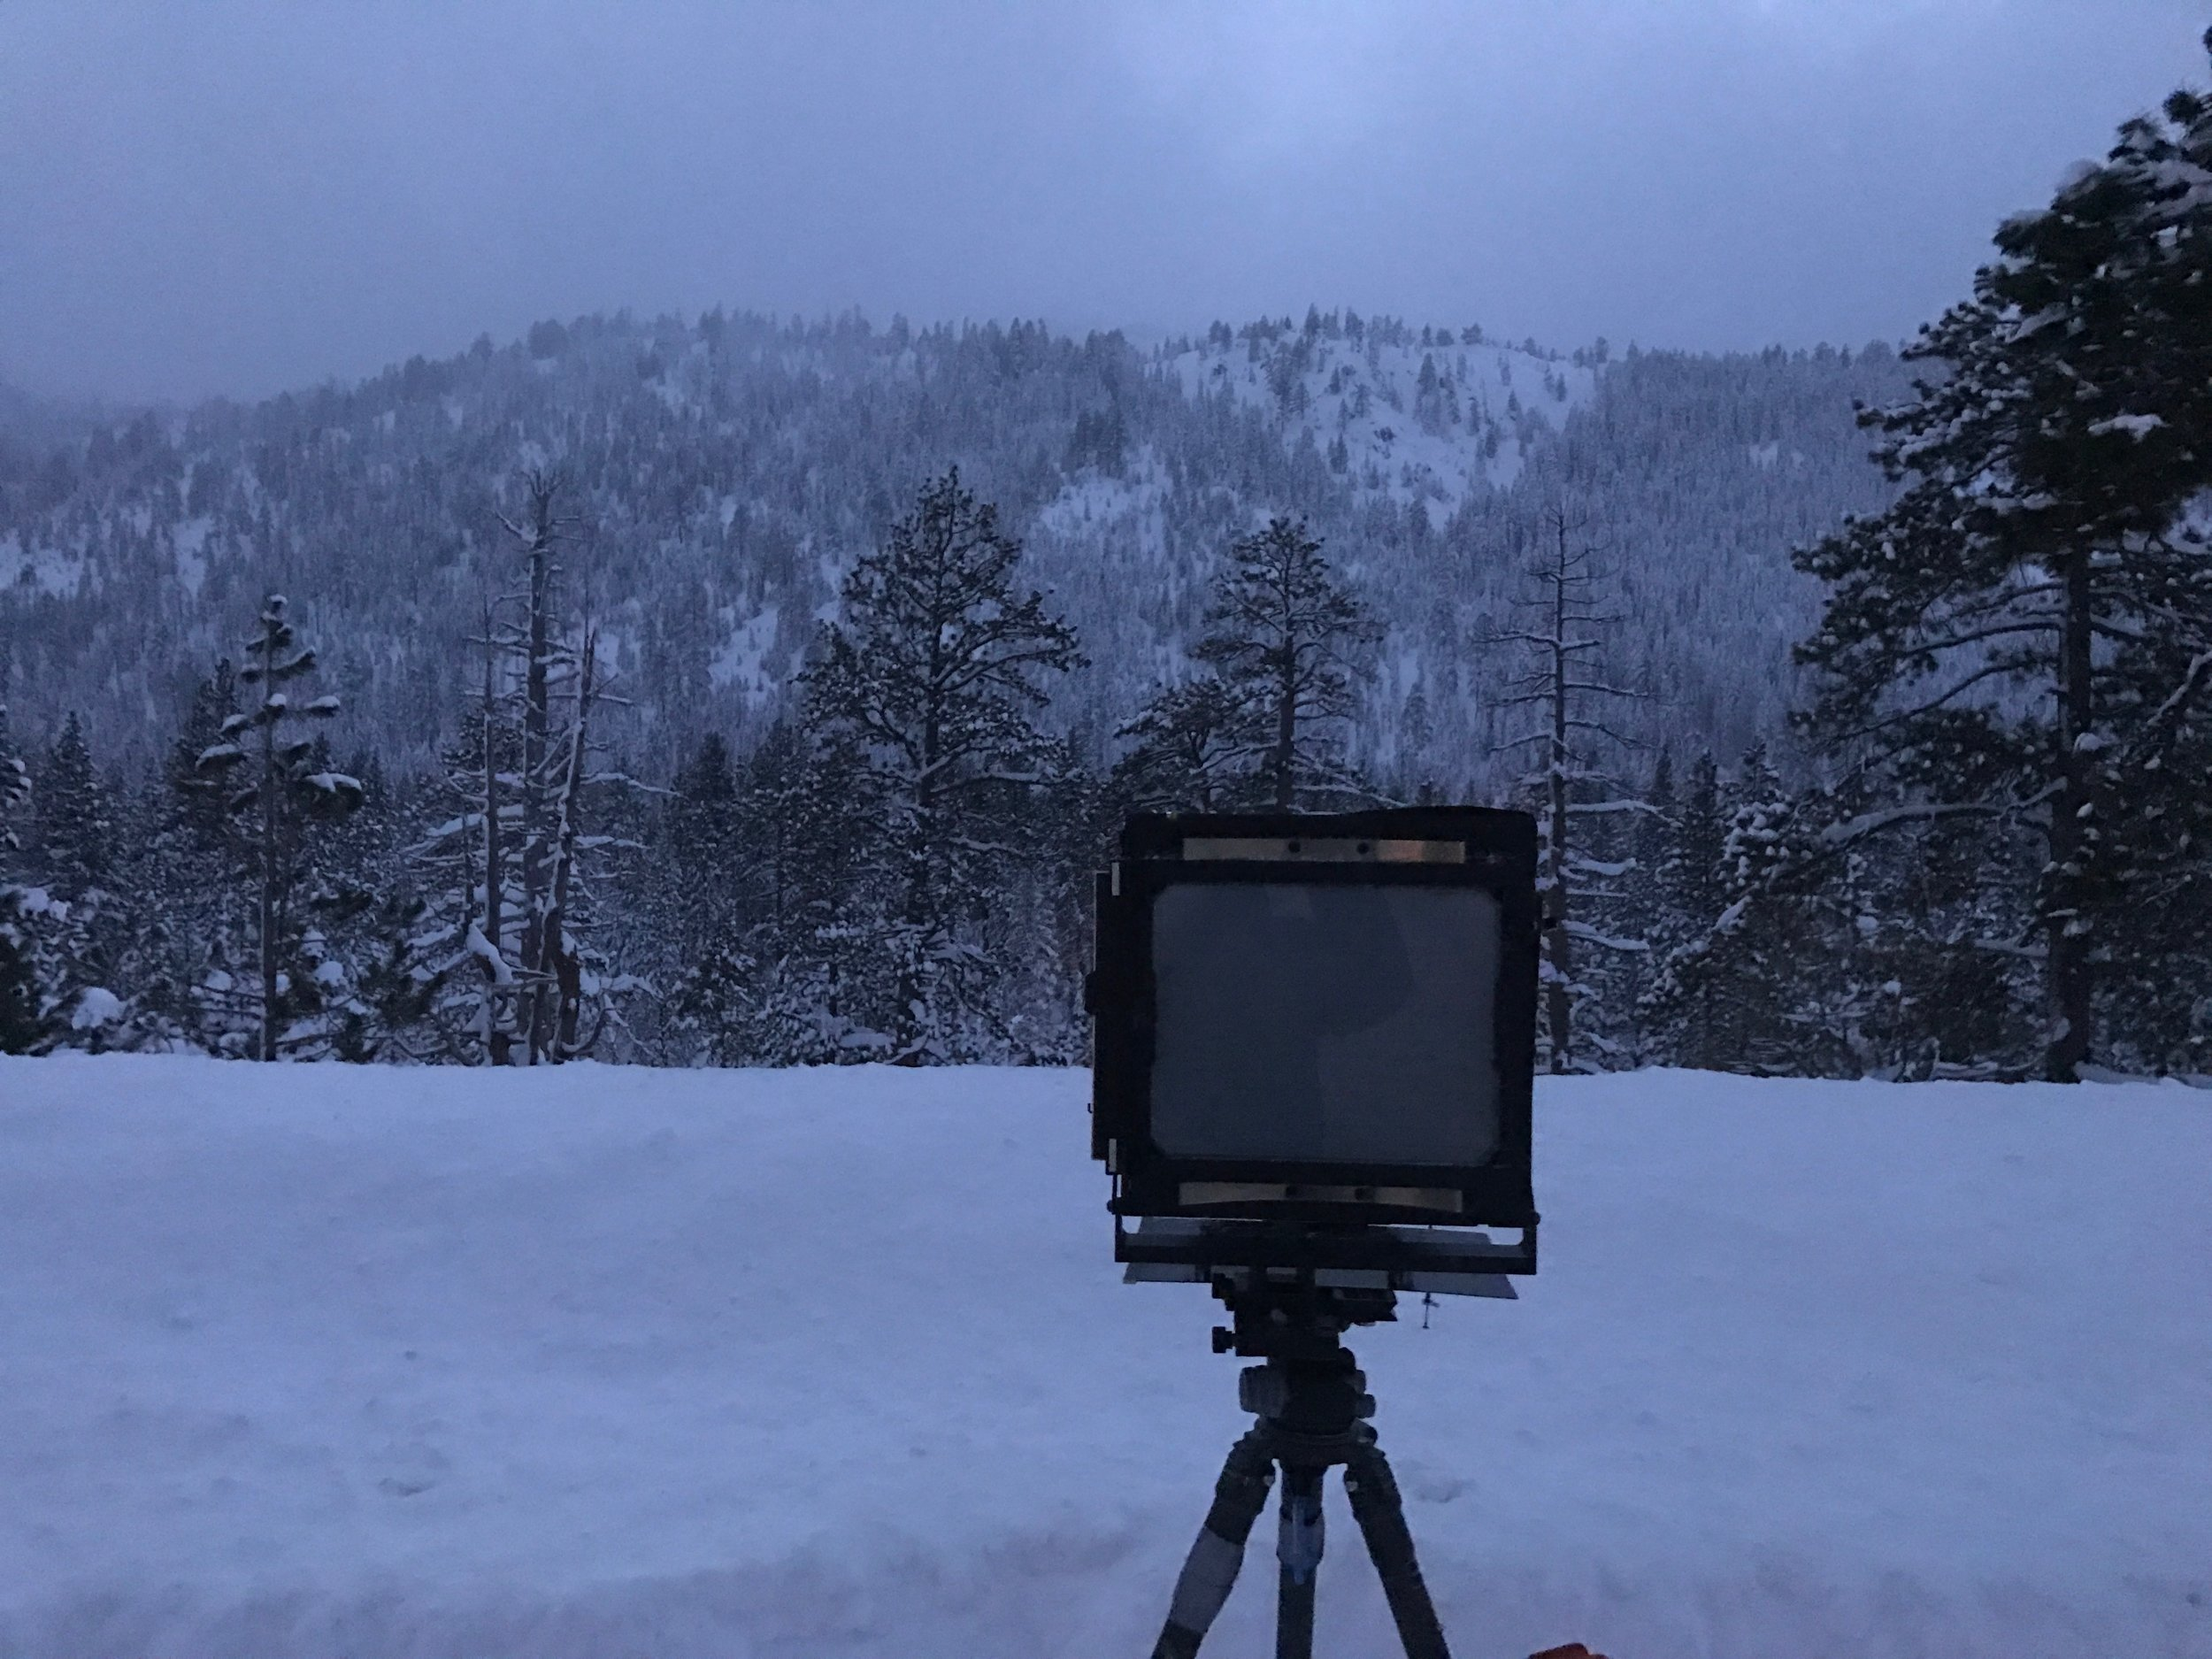 iphone image of my 8x10 film camera after shooting the final image above.